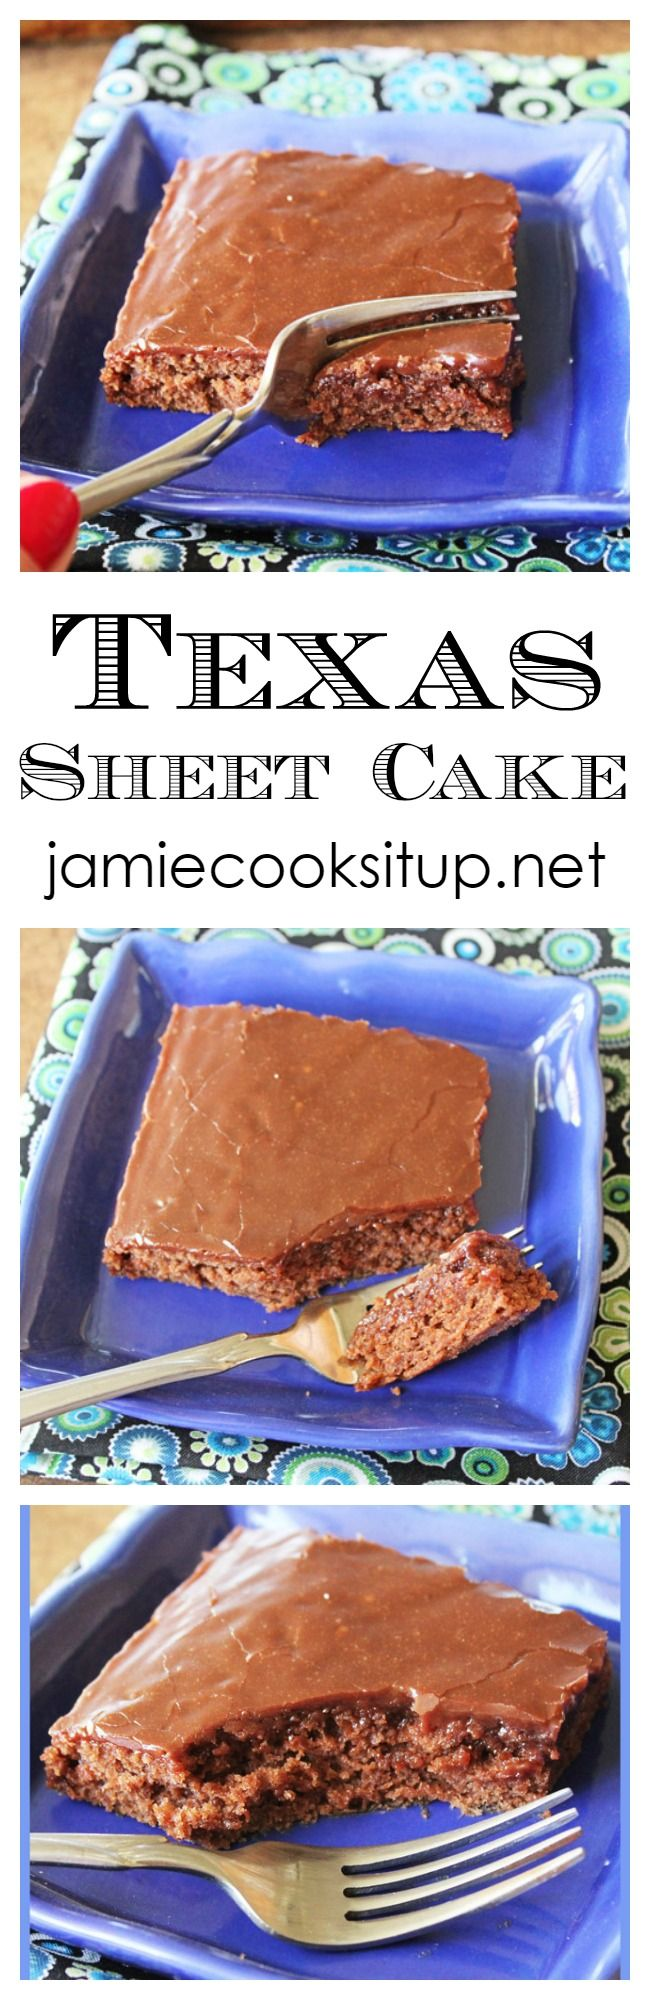 special occasion shoes for toddlers This wonderful Texas Sheet Cake is bursting with chocolate flavor  is easy to prepare and will feed a crowd  Perfect for parties of all kinds